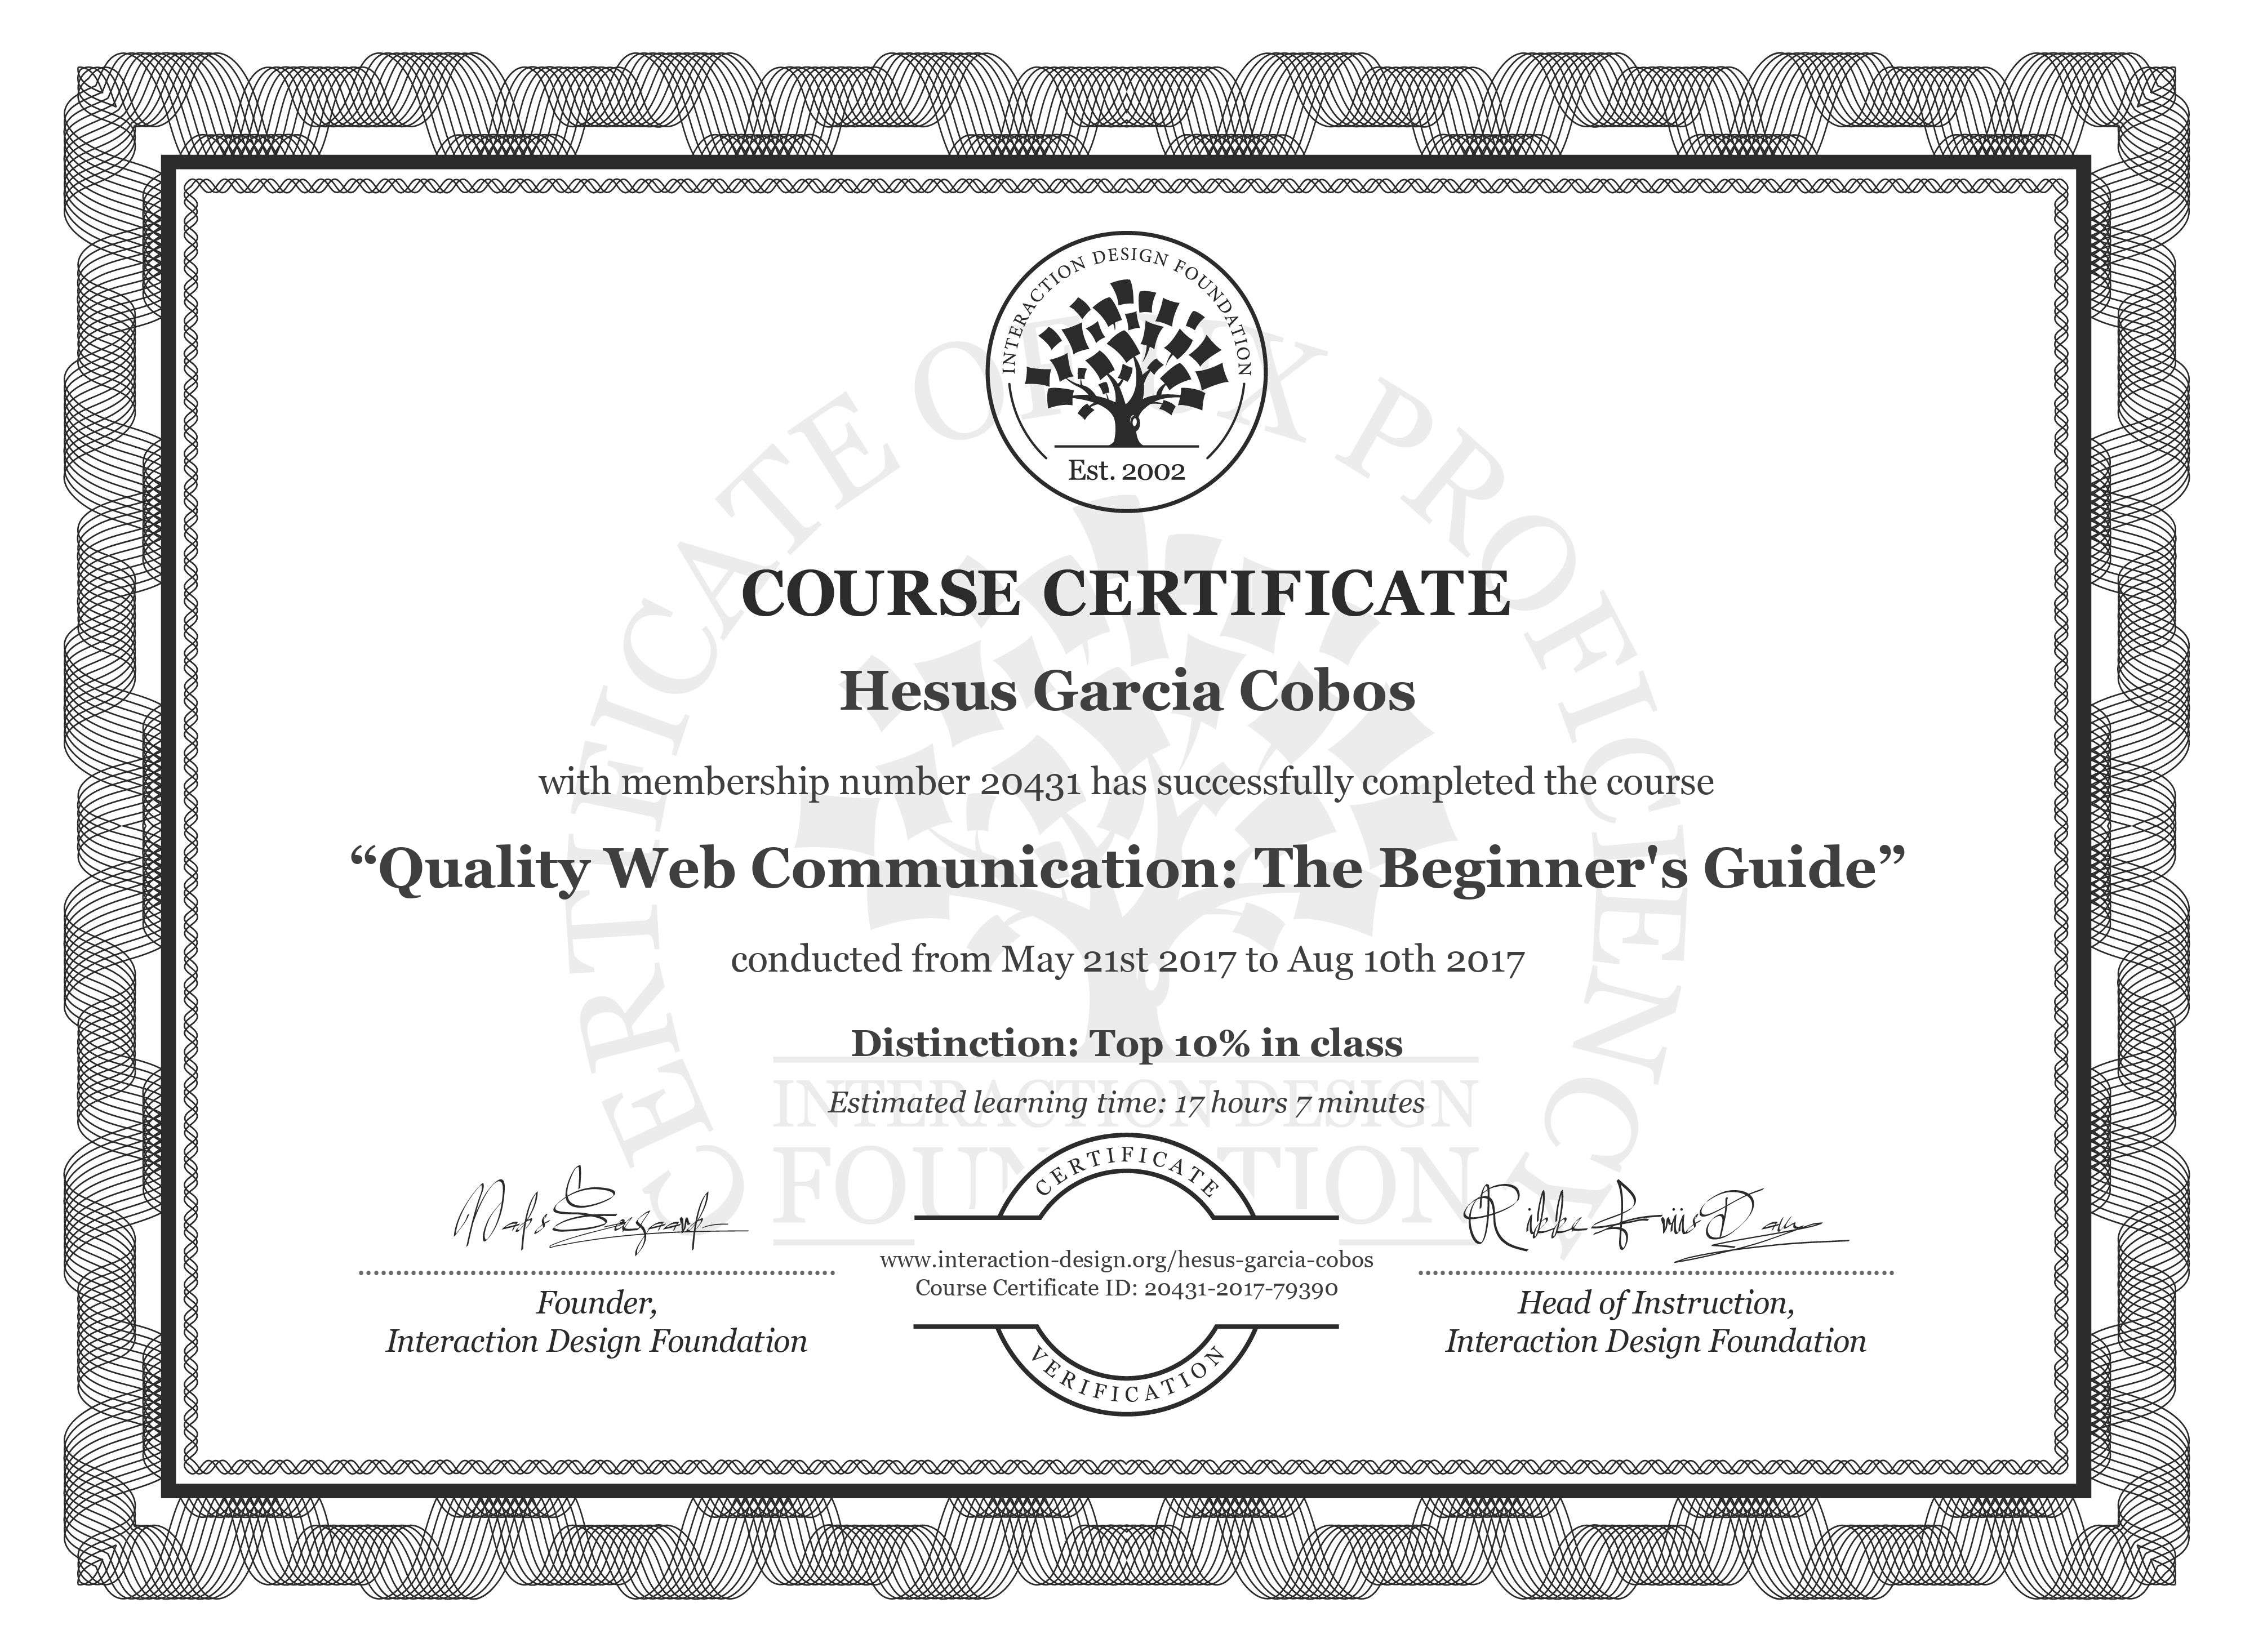 Hesus Garcia Cobos: Course Certificate - Quality Web Communication: The Beginner's Guide